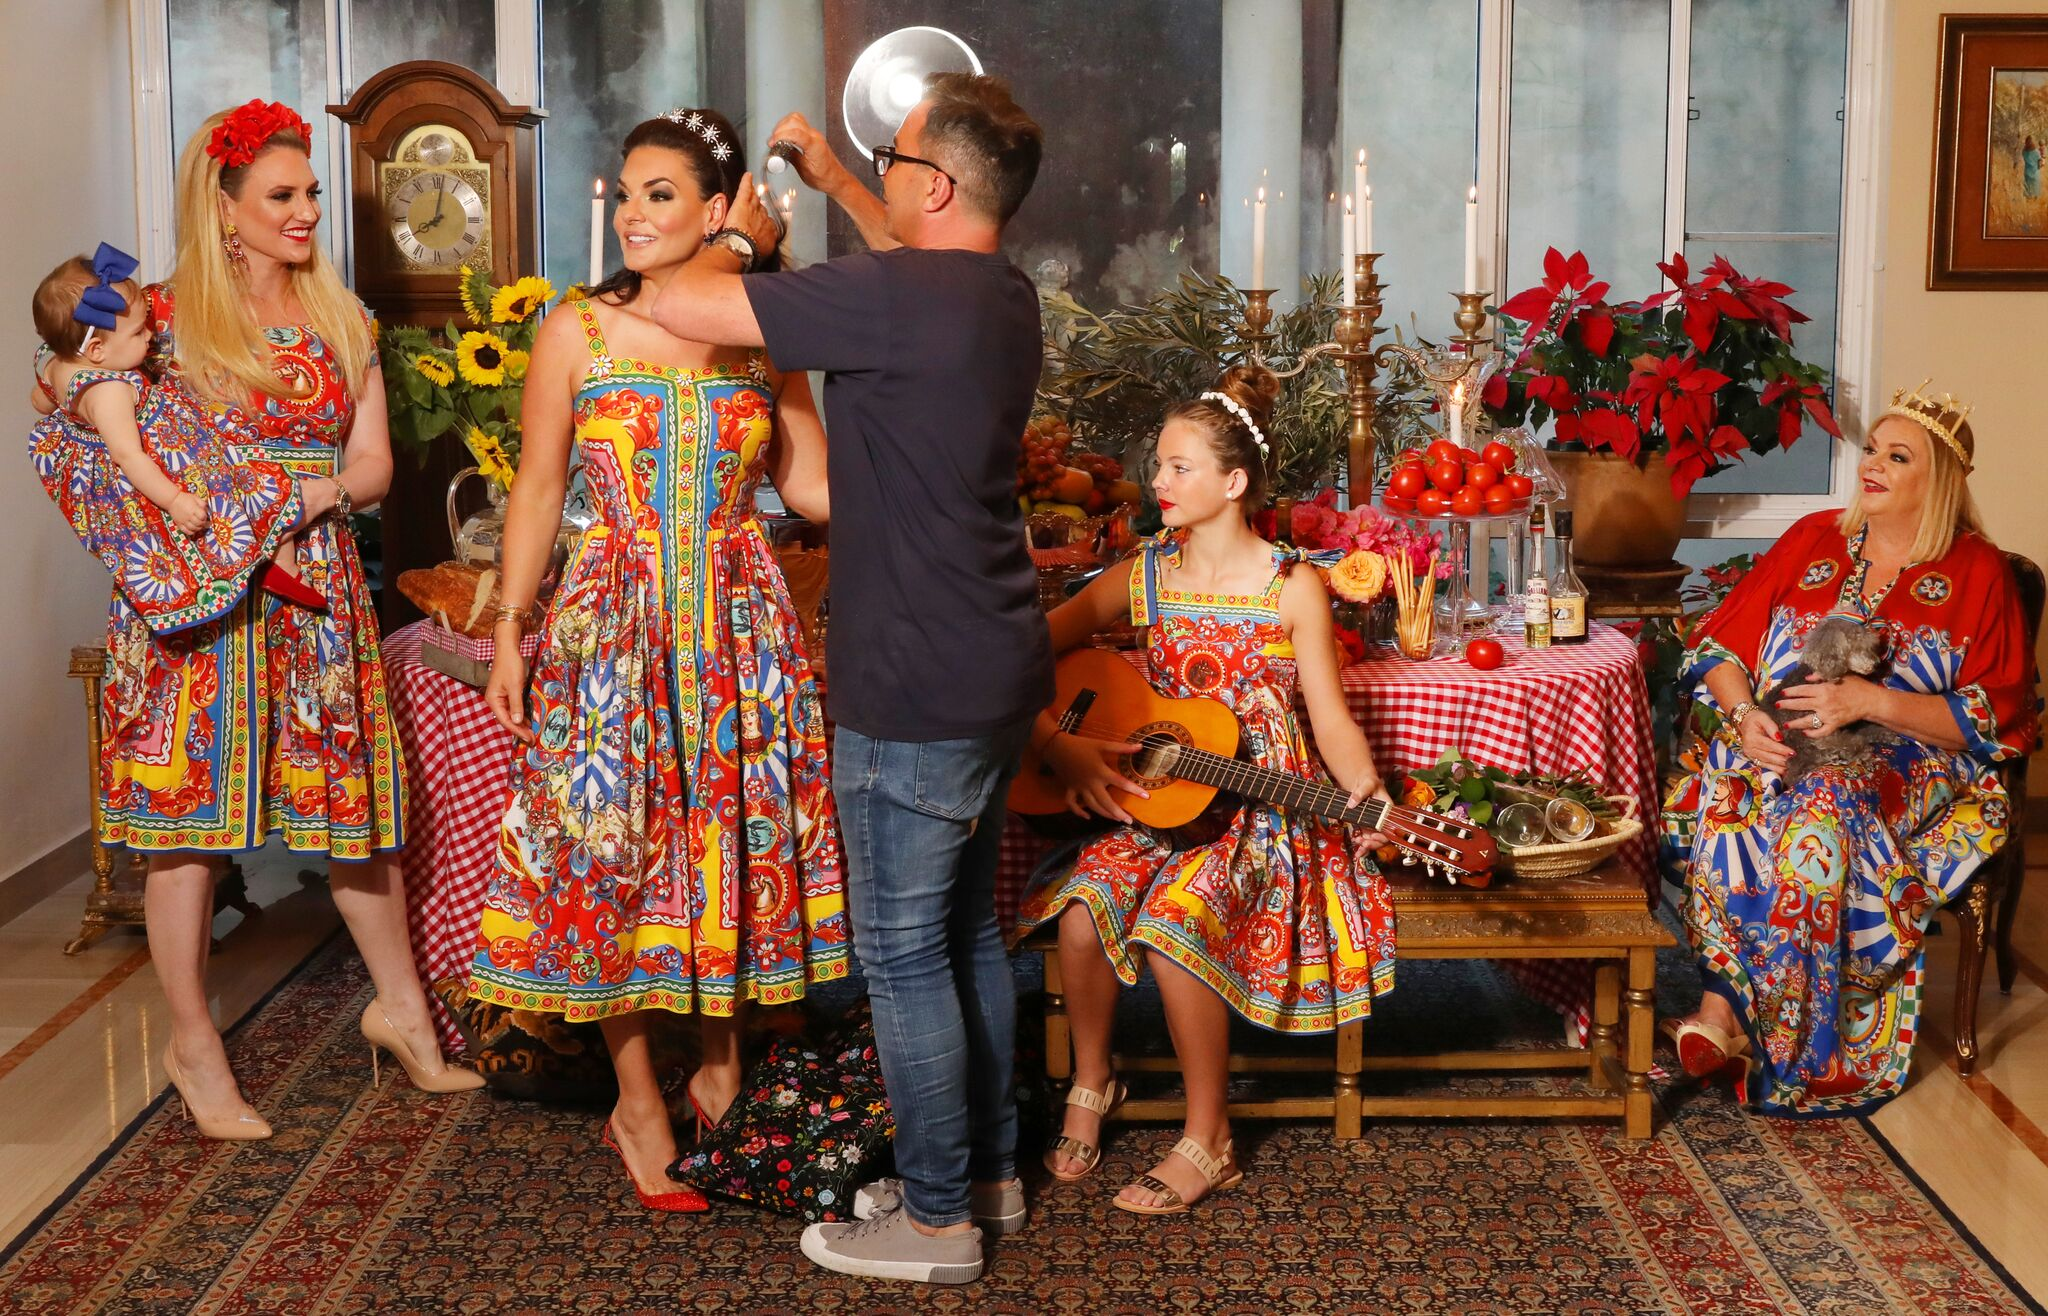 Behind the Scenes of Dolce and Gabbanna Carretto Siciliano Inspired Photoshoot